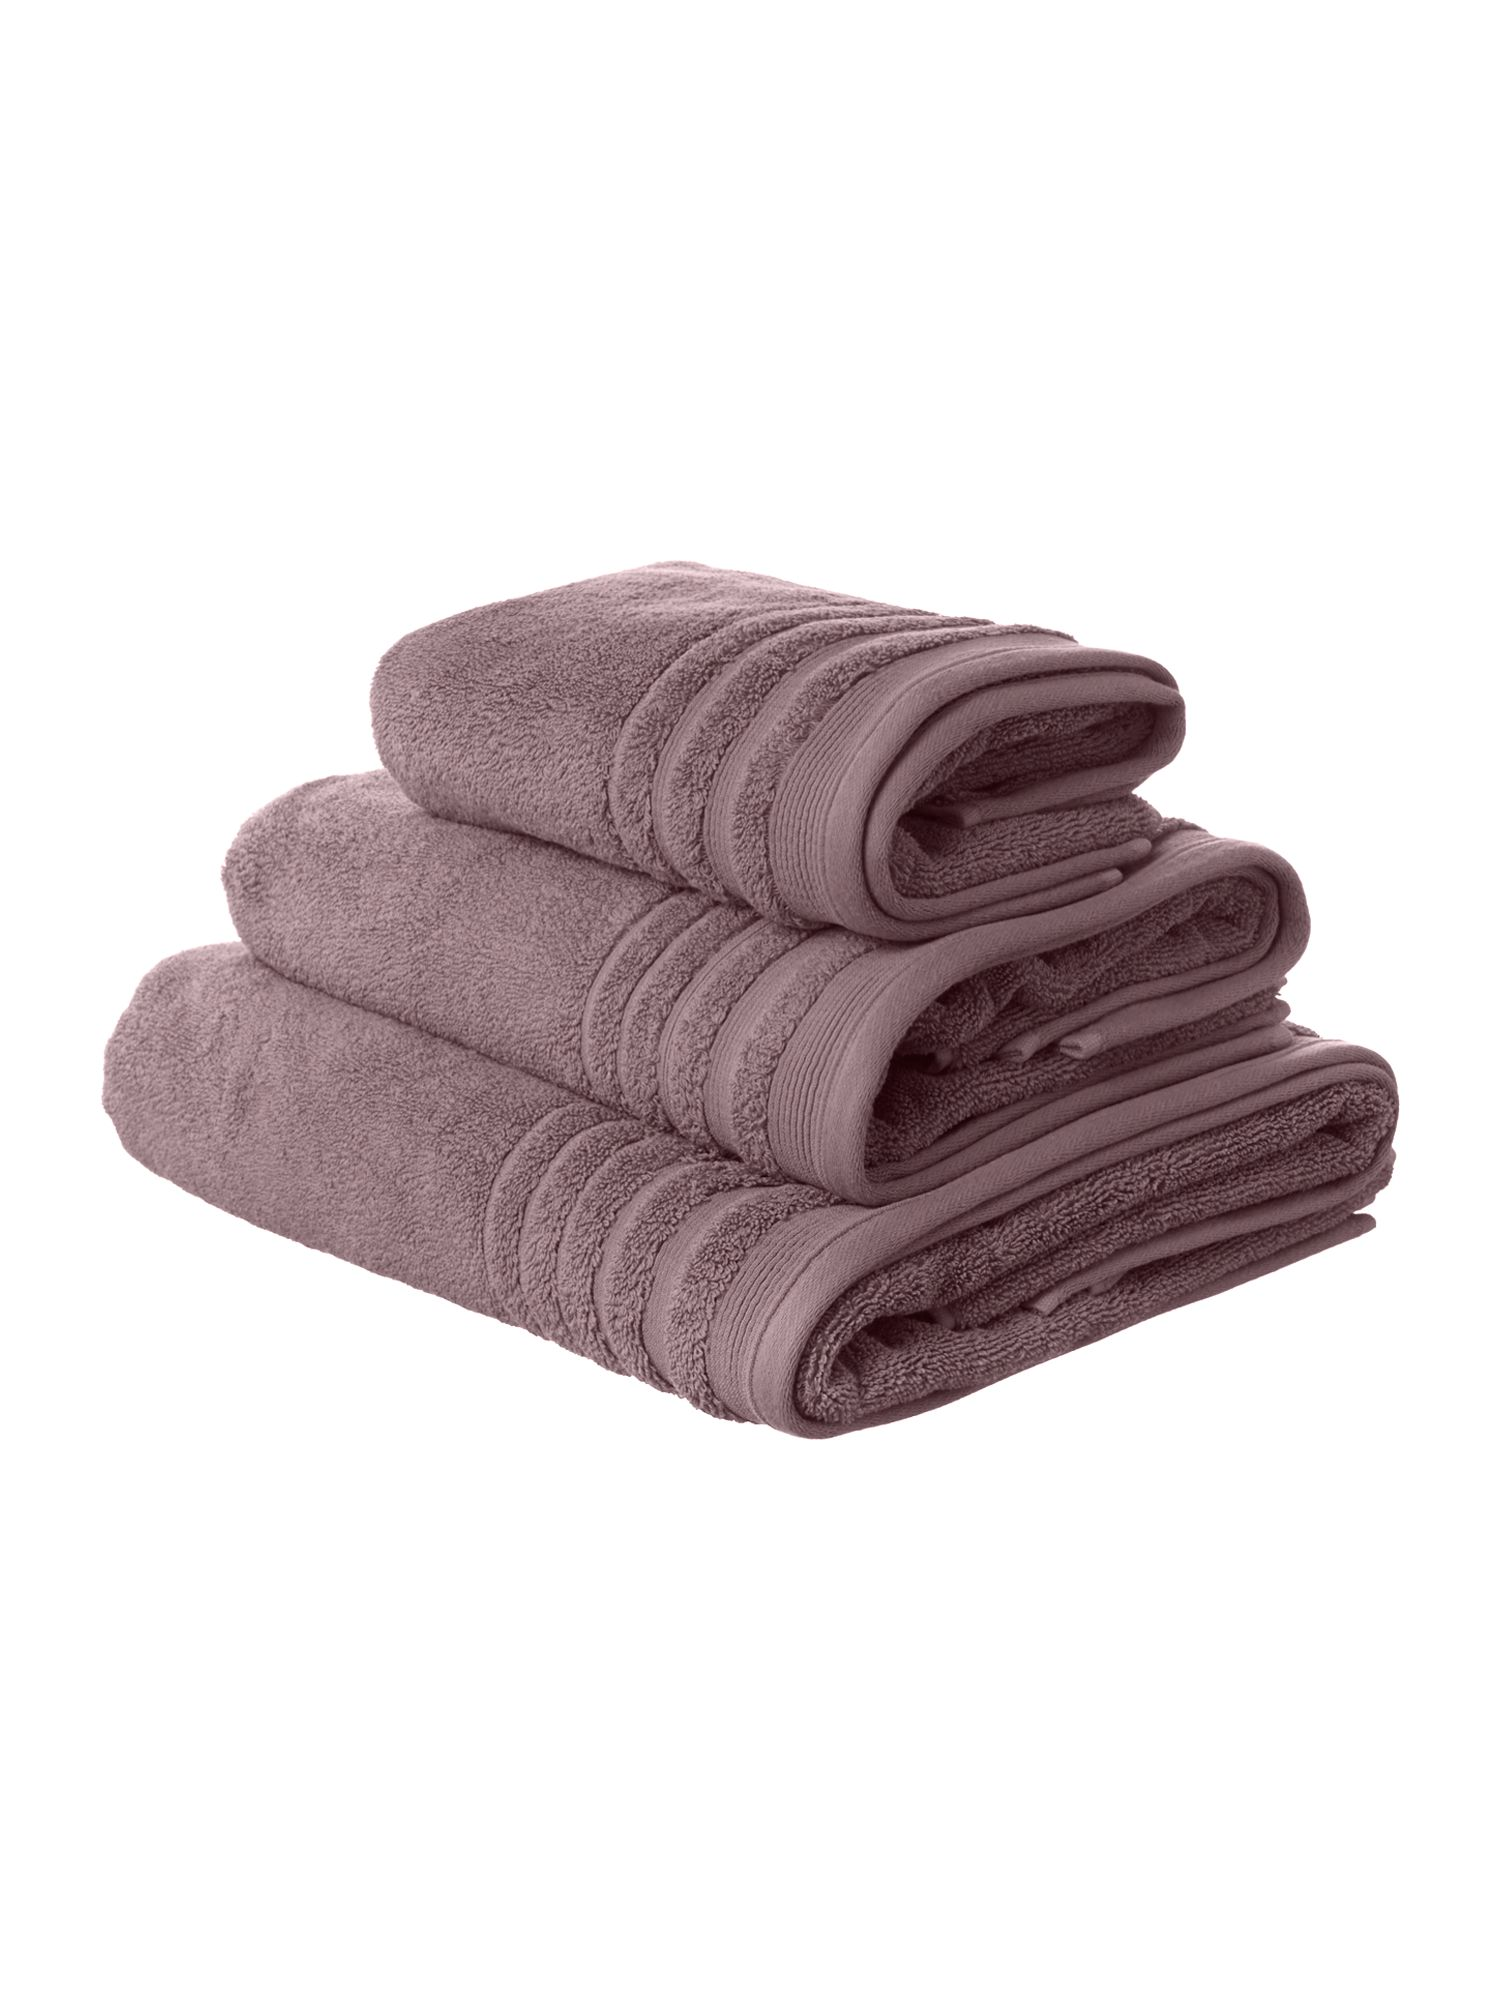 Classic luxury towel range in amethyst